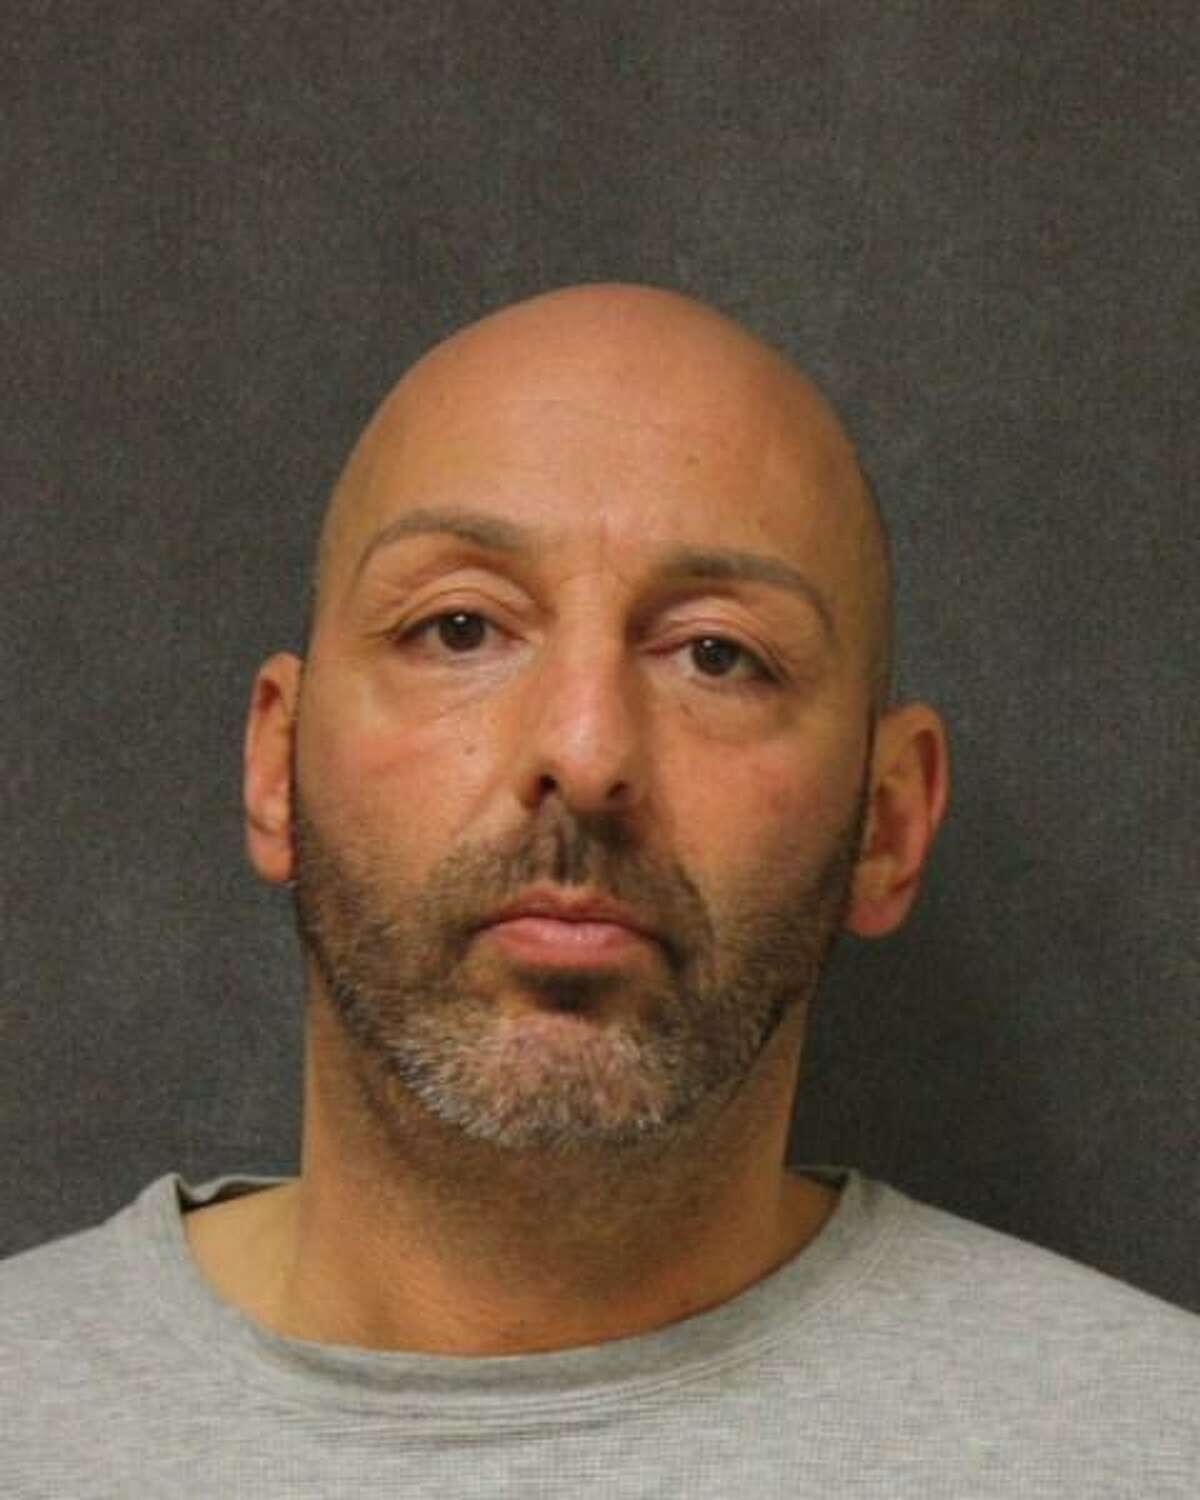 Dominick Viggiano, 40, of Dora Street, Stamford was charged in February by Ansonia Police for allegedly patronizing a prostitute